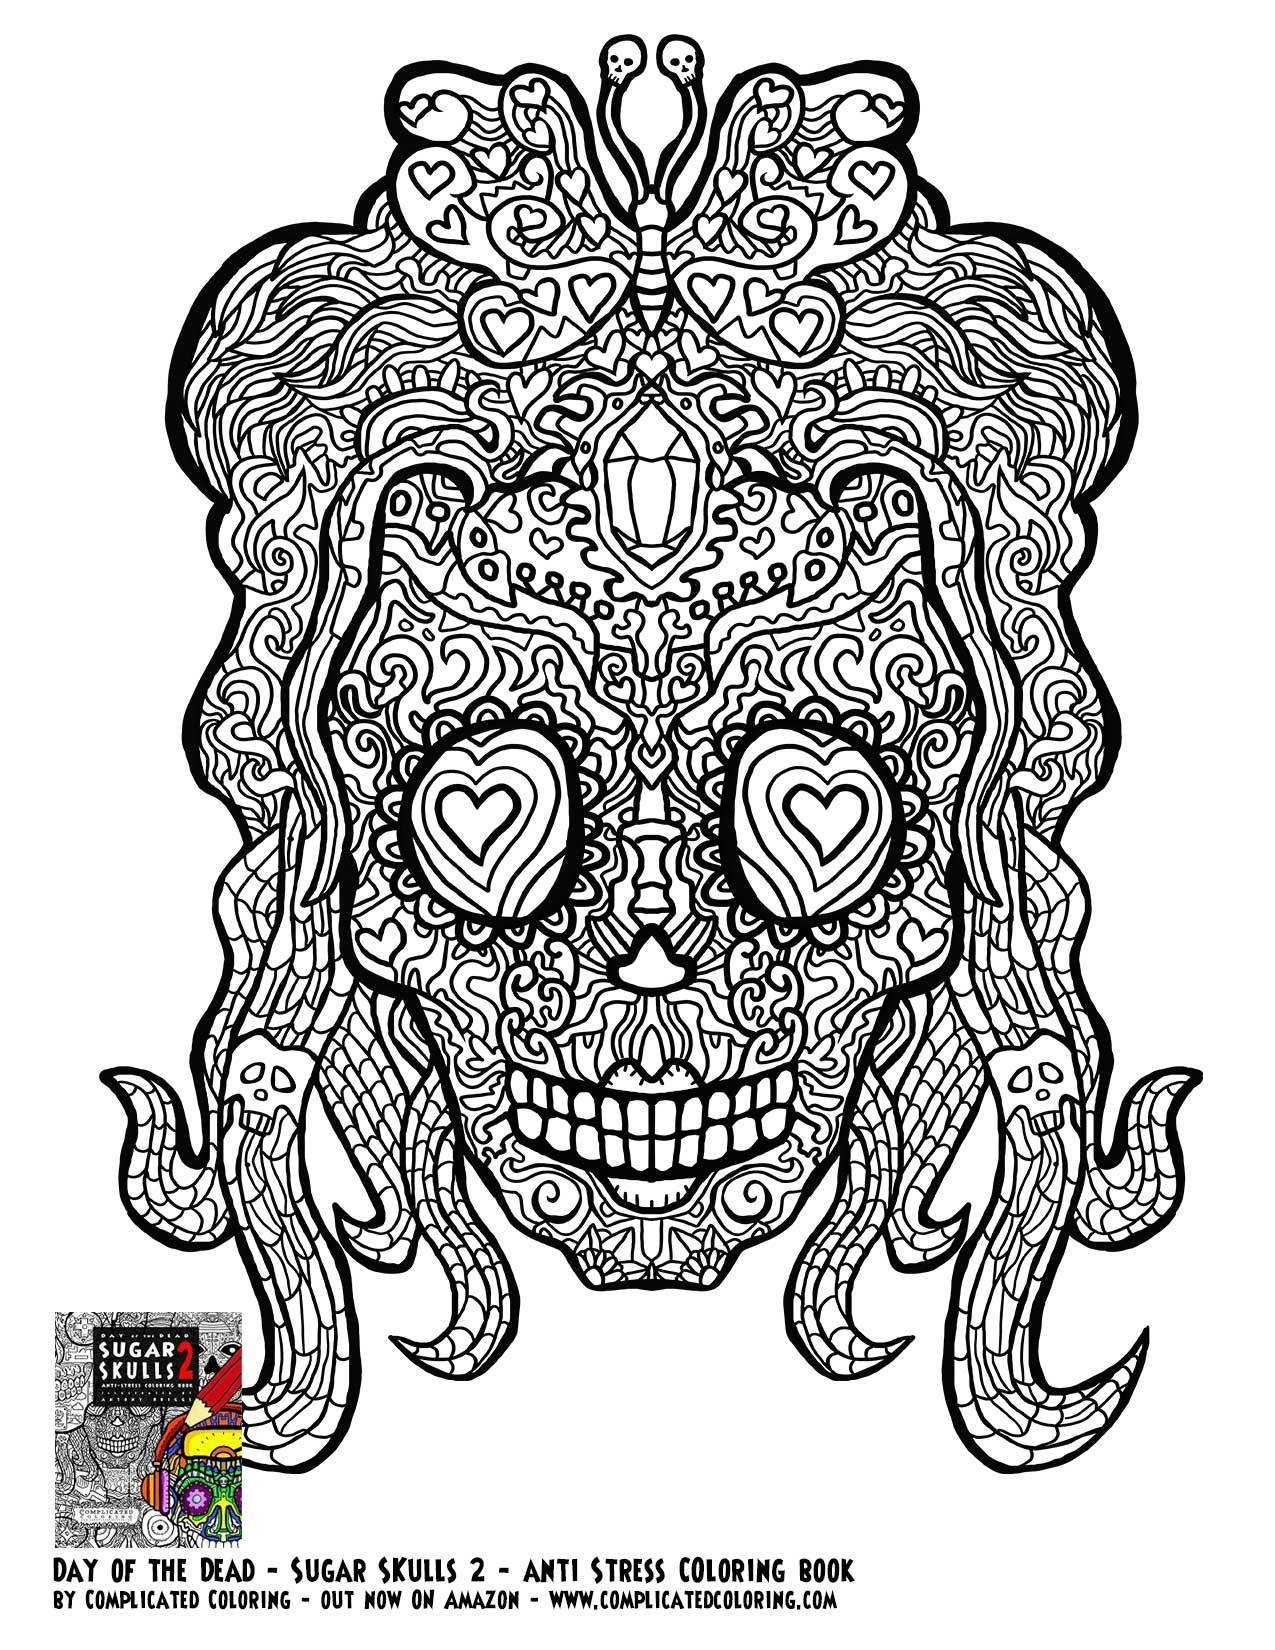 - Cool Coloring Pages Complicated Coloring Pages For Adults